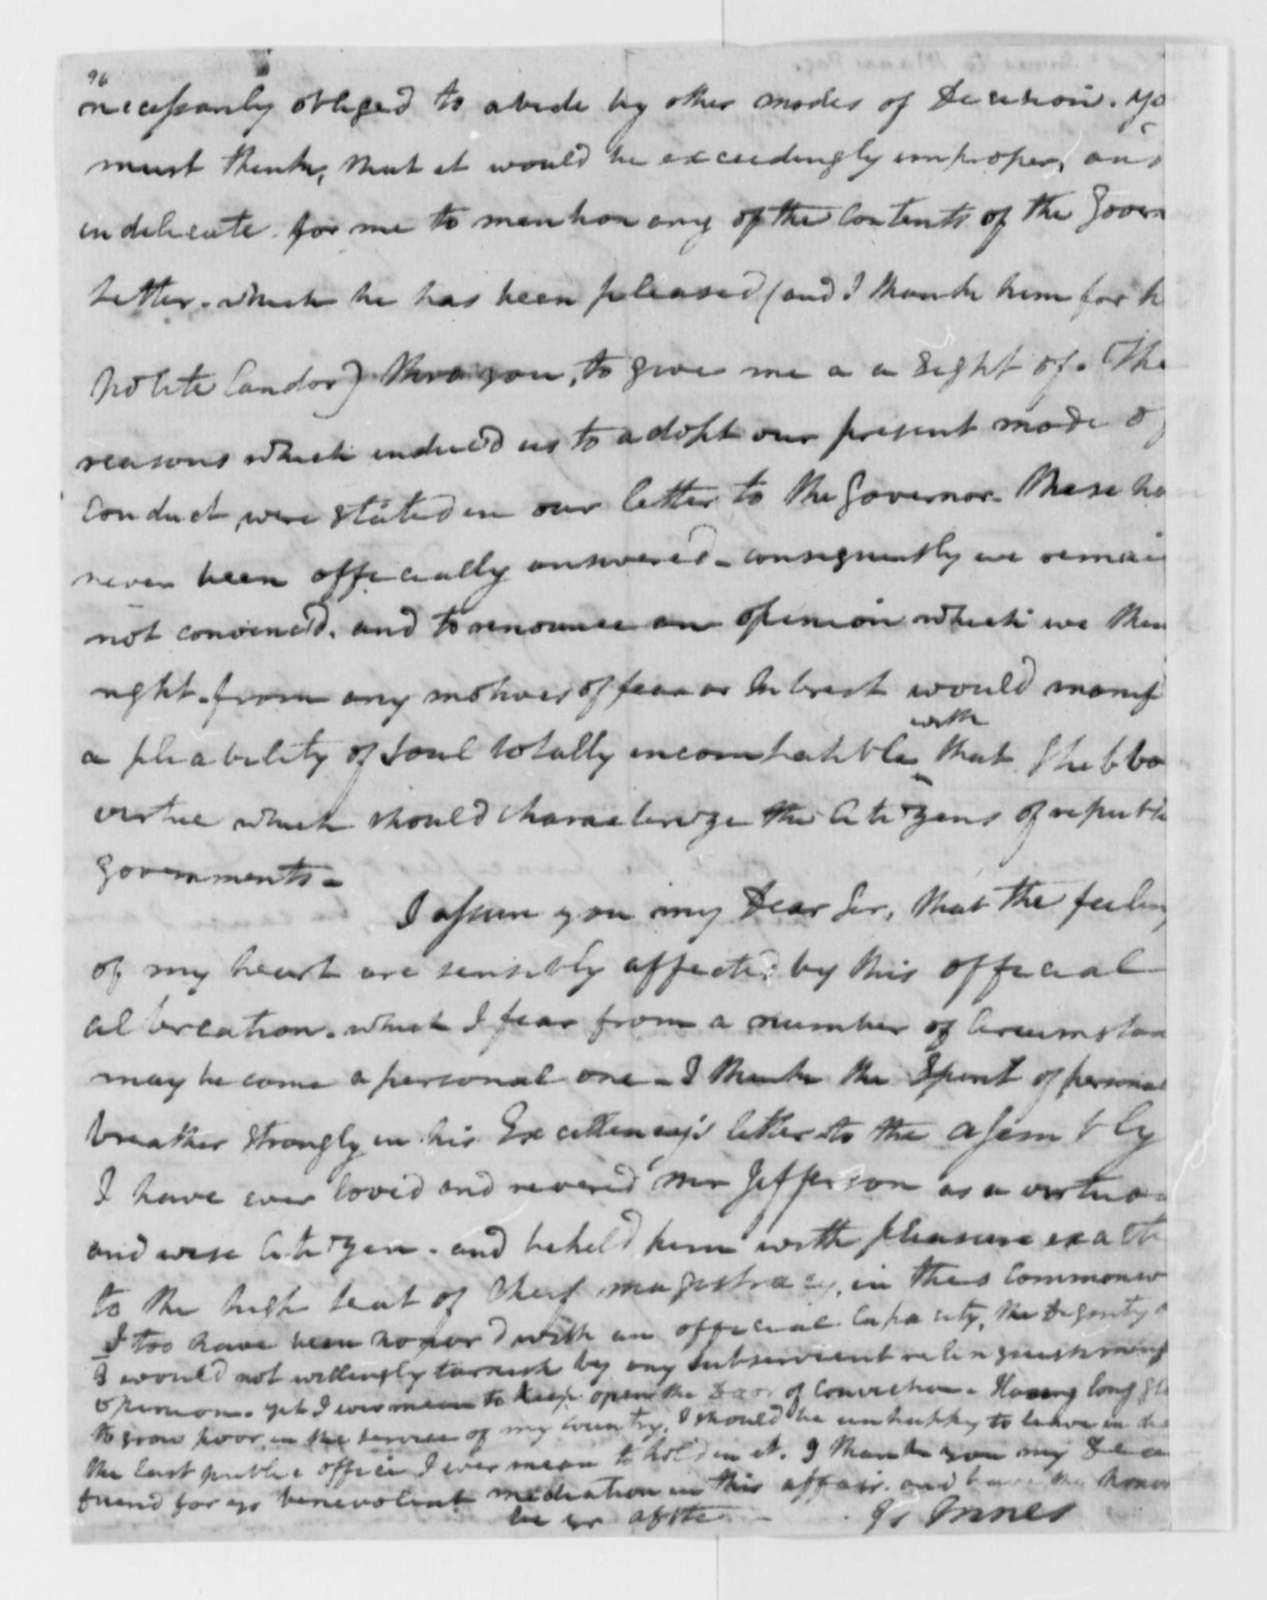 James Innes to Mann Page, October 27, 1779